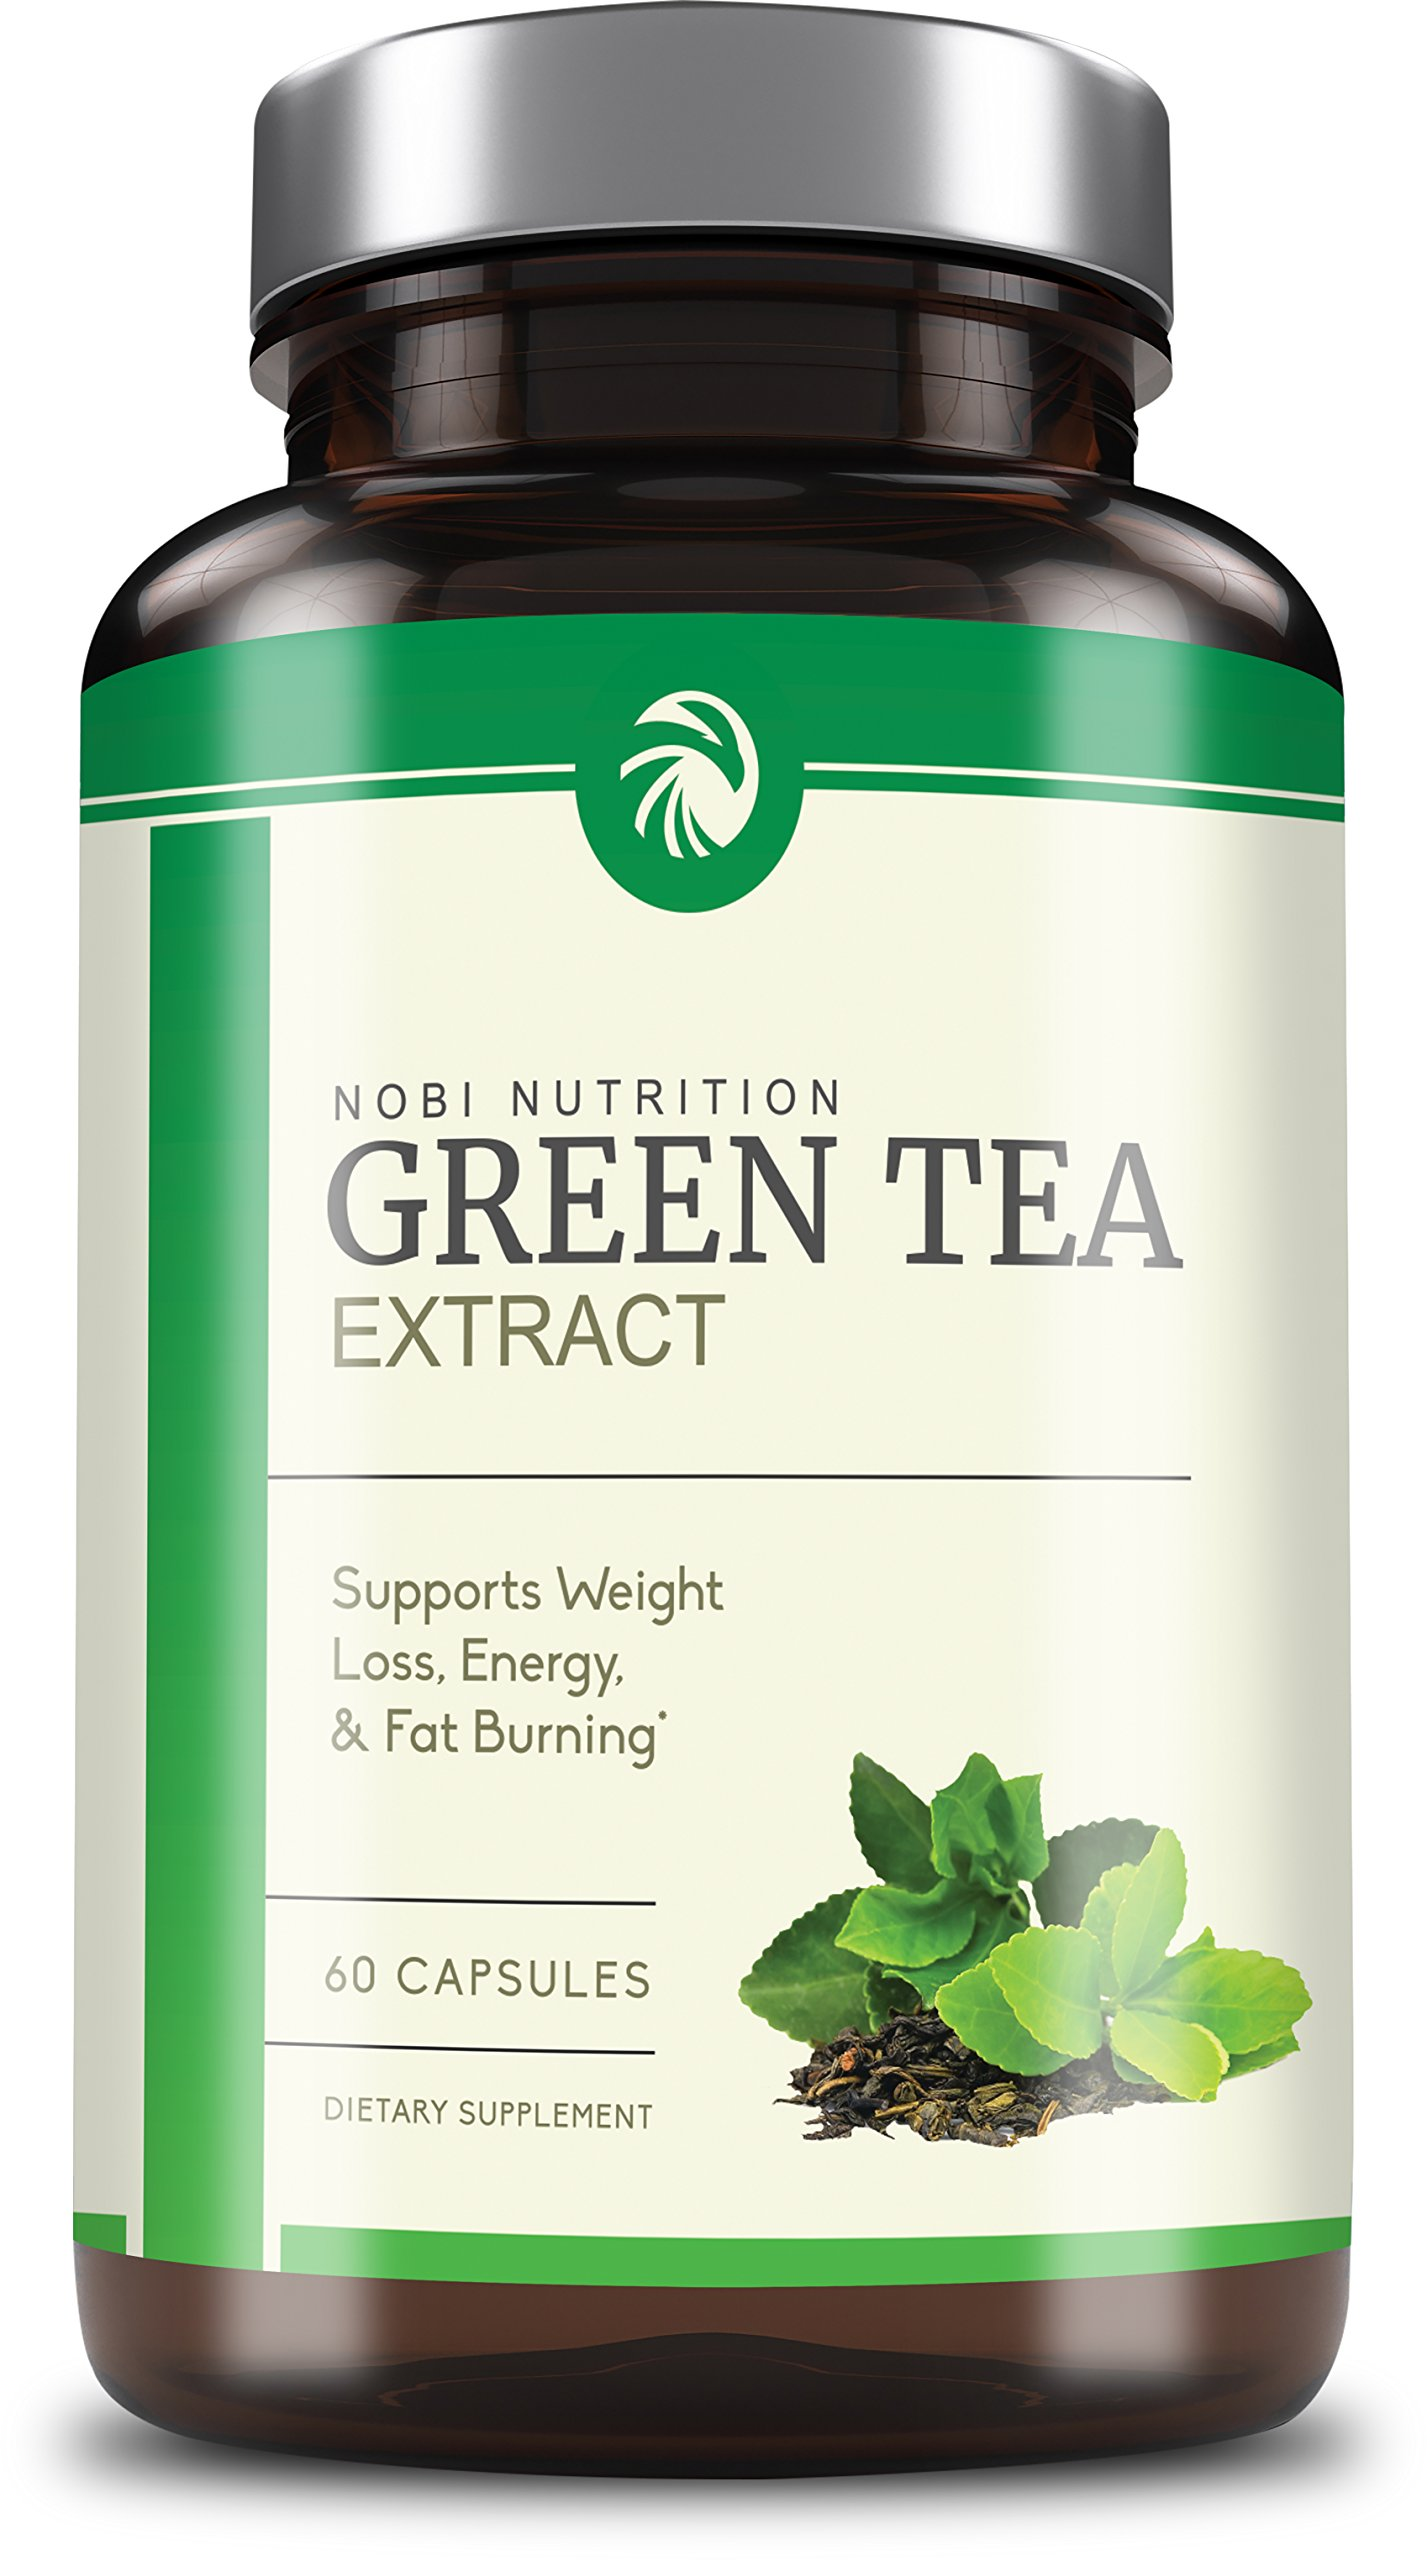 Nobi Nutrition's Green Tea Extract Supplement with EGCG for Weight Loss - Metabolism Boost and Heart Health - Caffeine Boost & Energy Supplement - All Natural Antioxidant